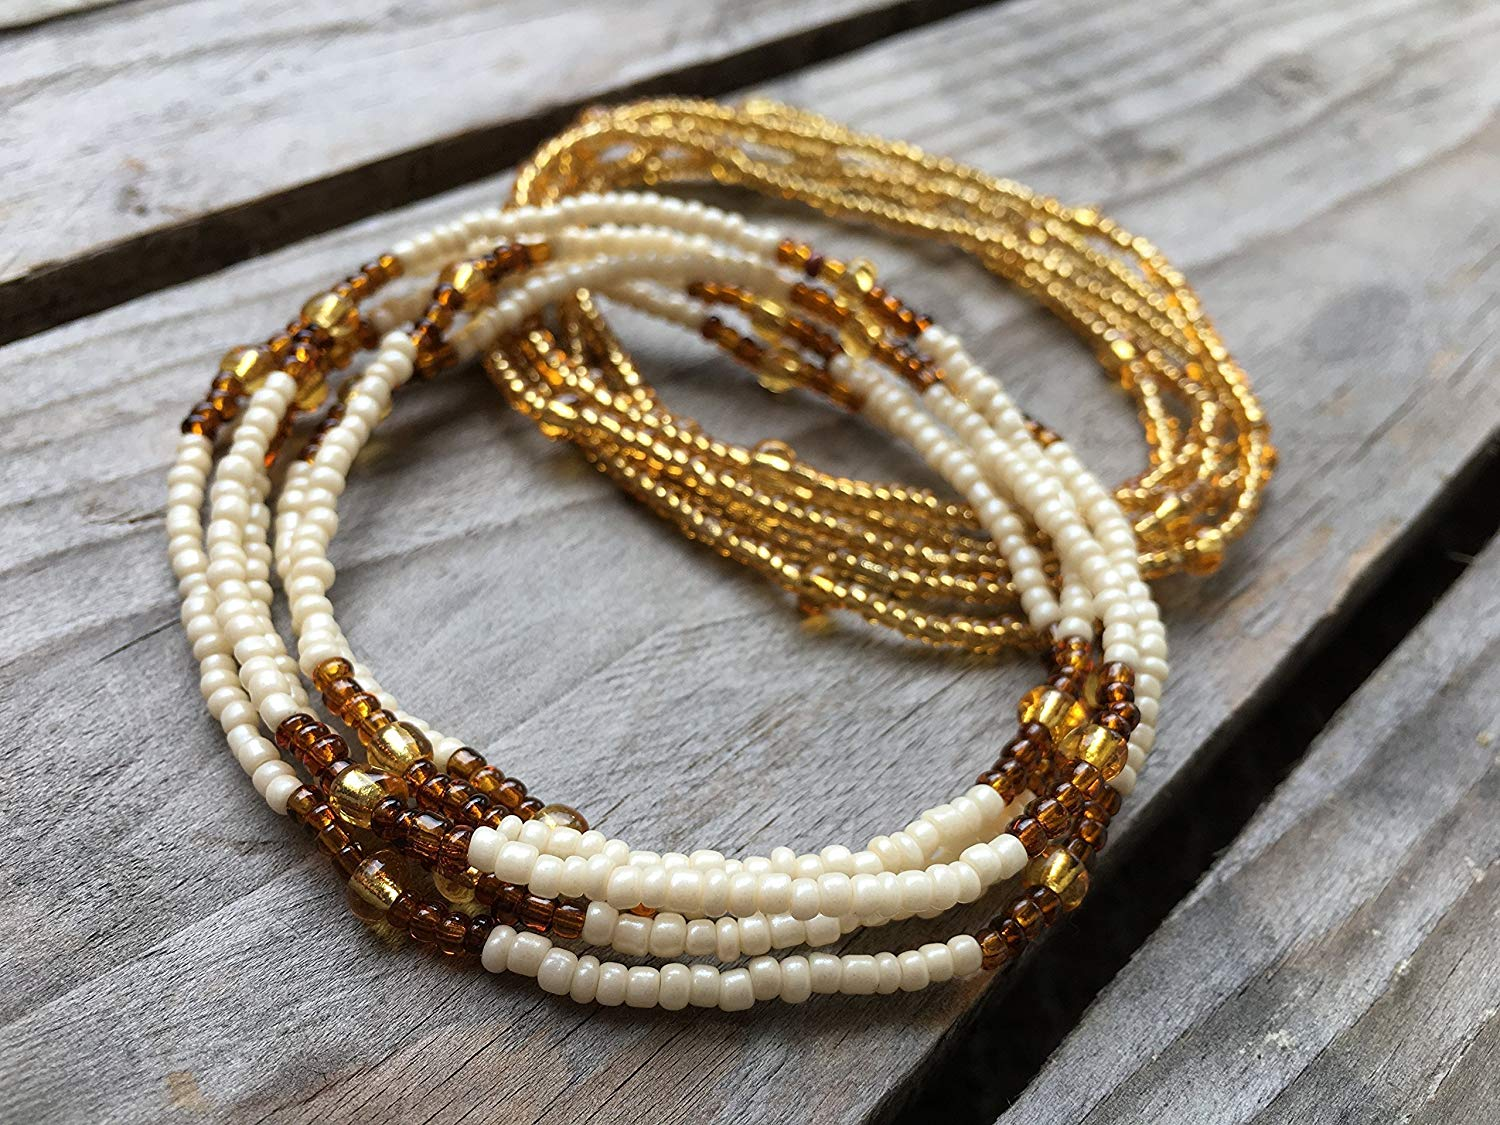 Handmade Waist Beads, 2 pcs Belly Bead Set, Belly Chain, Ivory Brown and Gold Waist Beads, Body Jewelry, African Waist bead, Waist chain, Stretchy Elastic String, Wear as Necklace Bracelet or Anklet